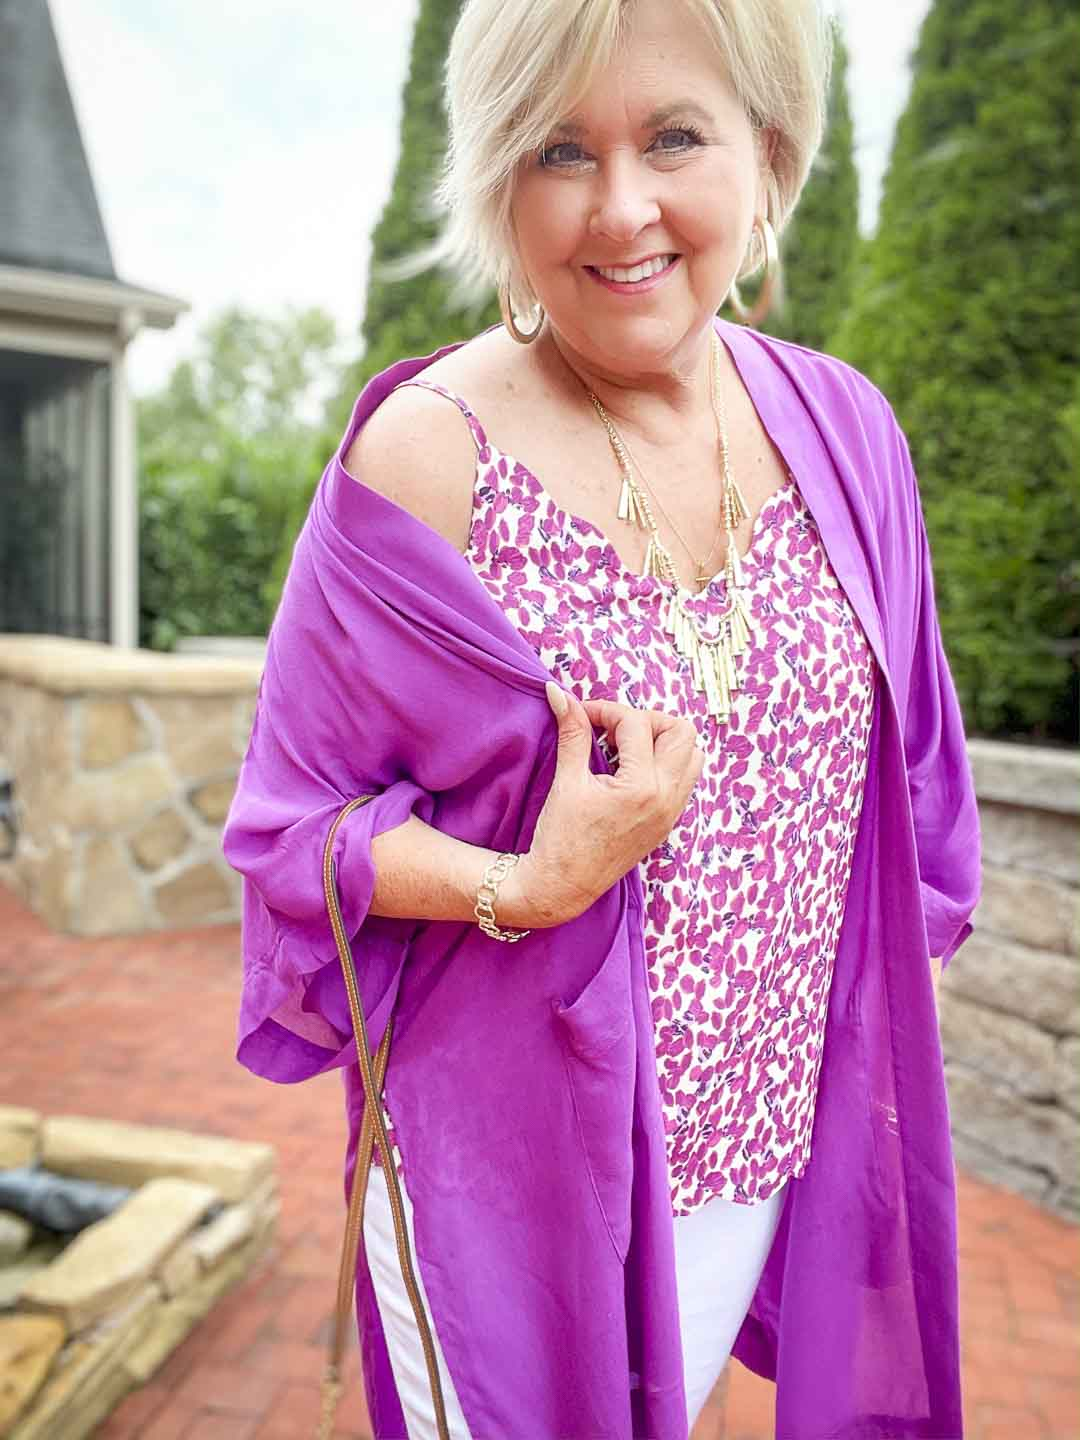 Over 40 fashion blogger, Tania Stephens is wearing a purple cardigan with a printed camisole with gold jewelry